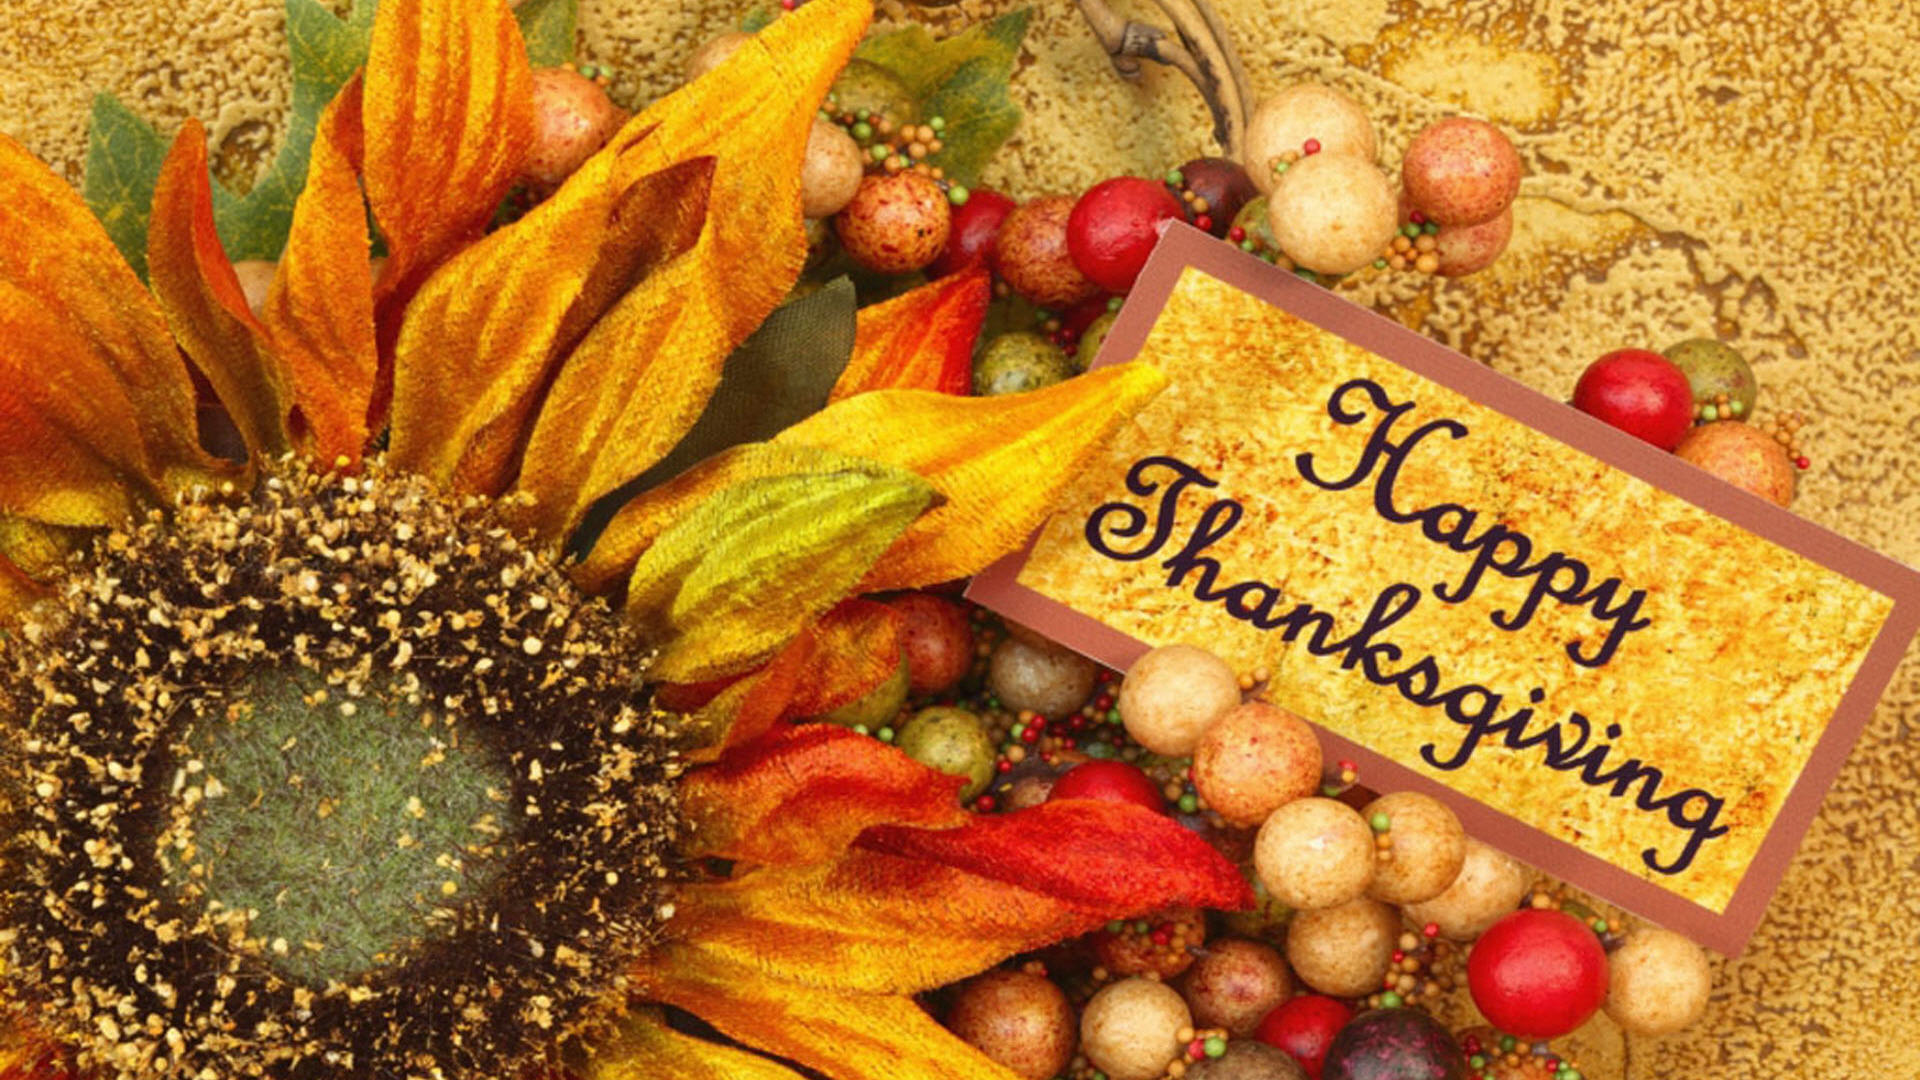 desktop backgrounds for thanksgiving   SF Wallpaper 1920x1080